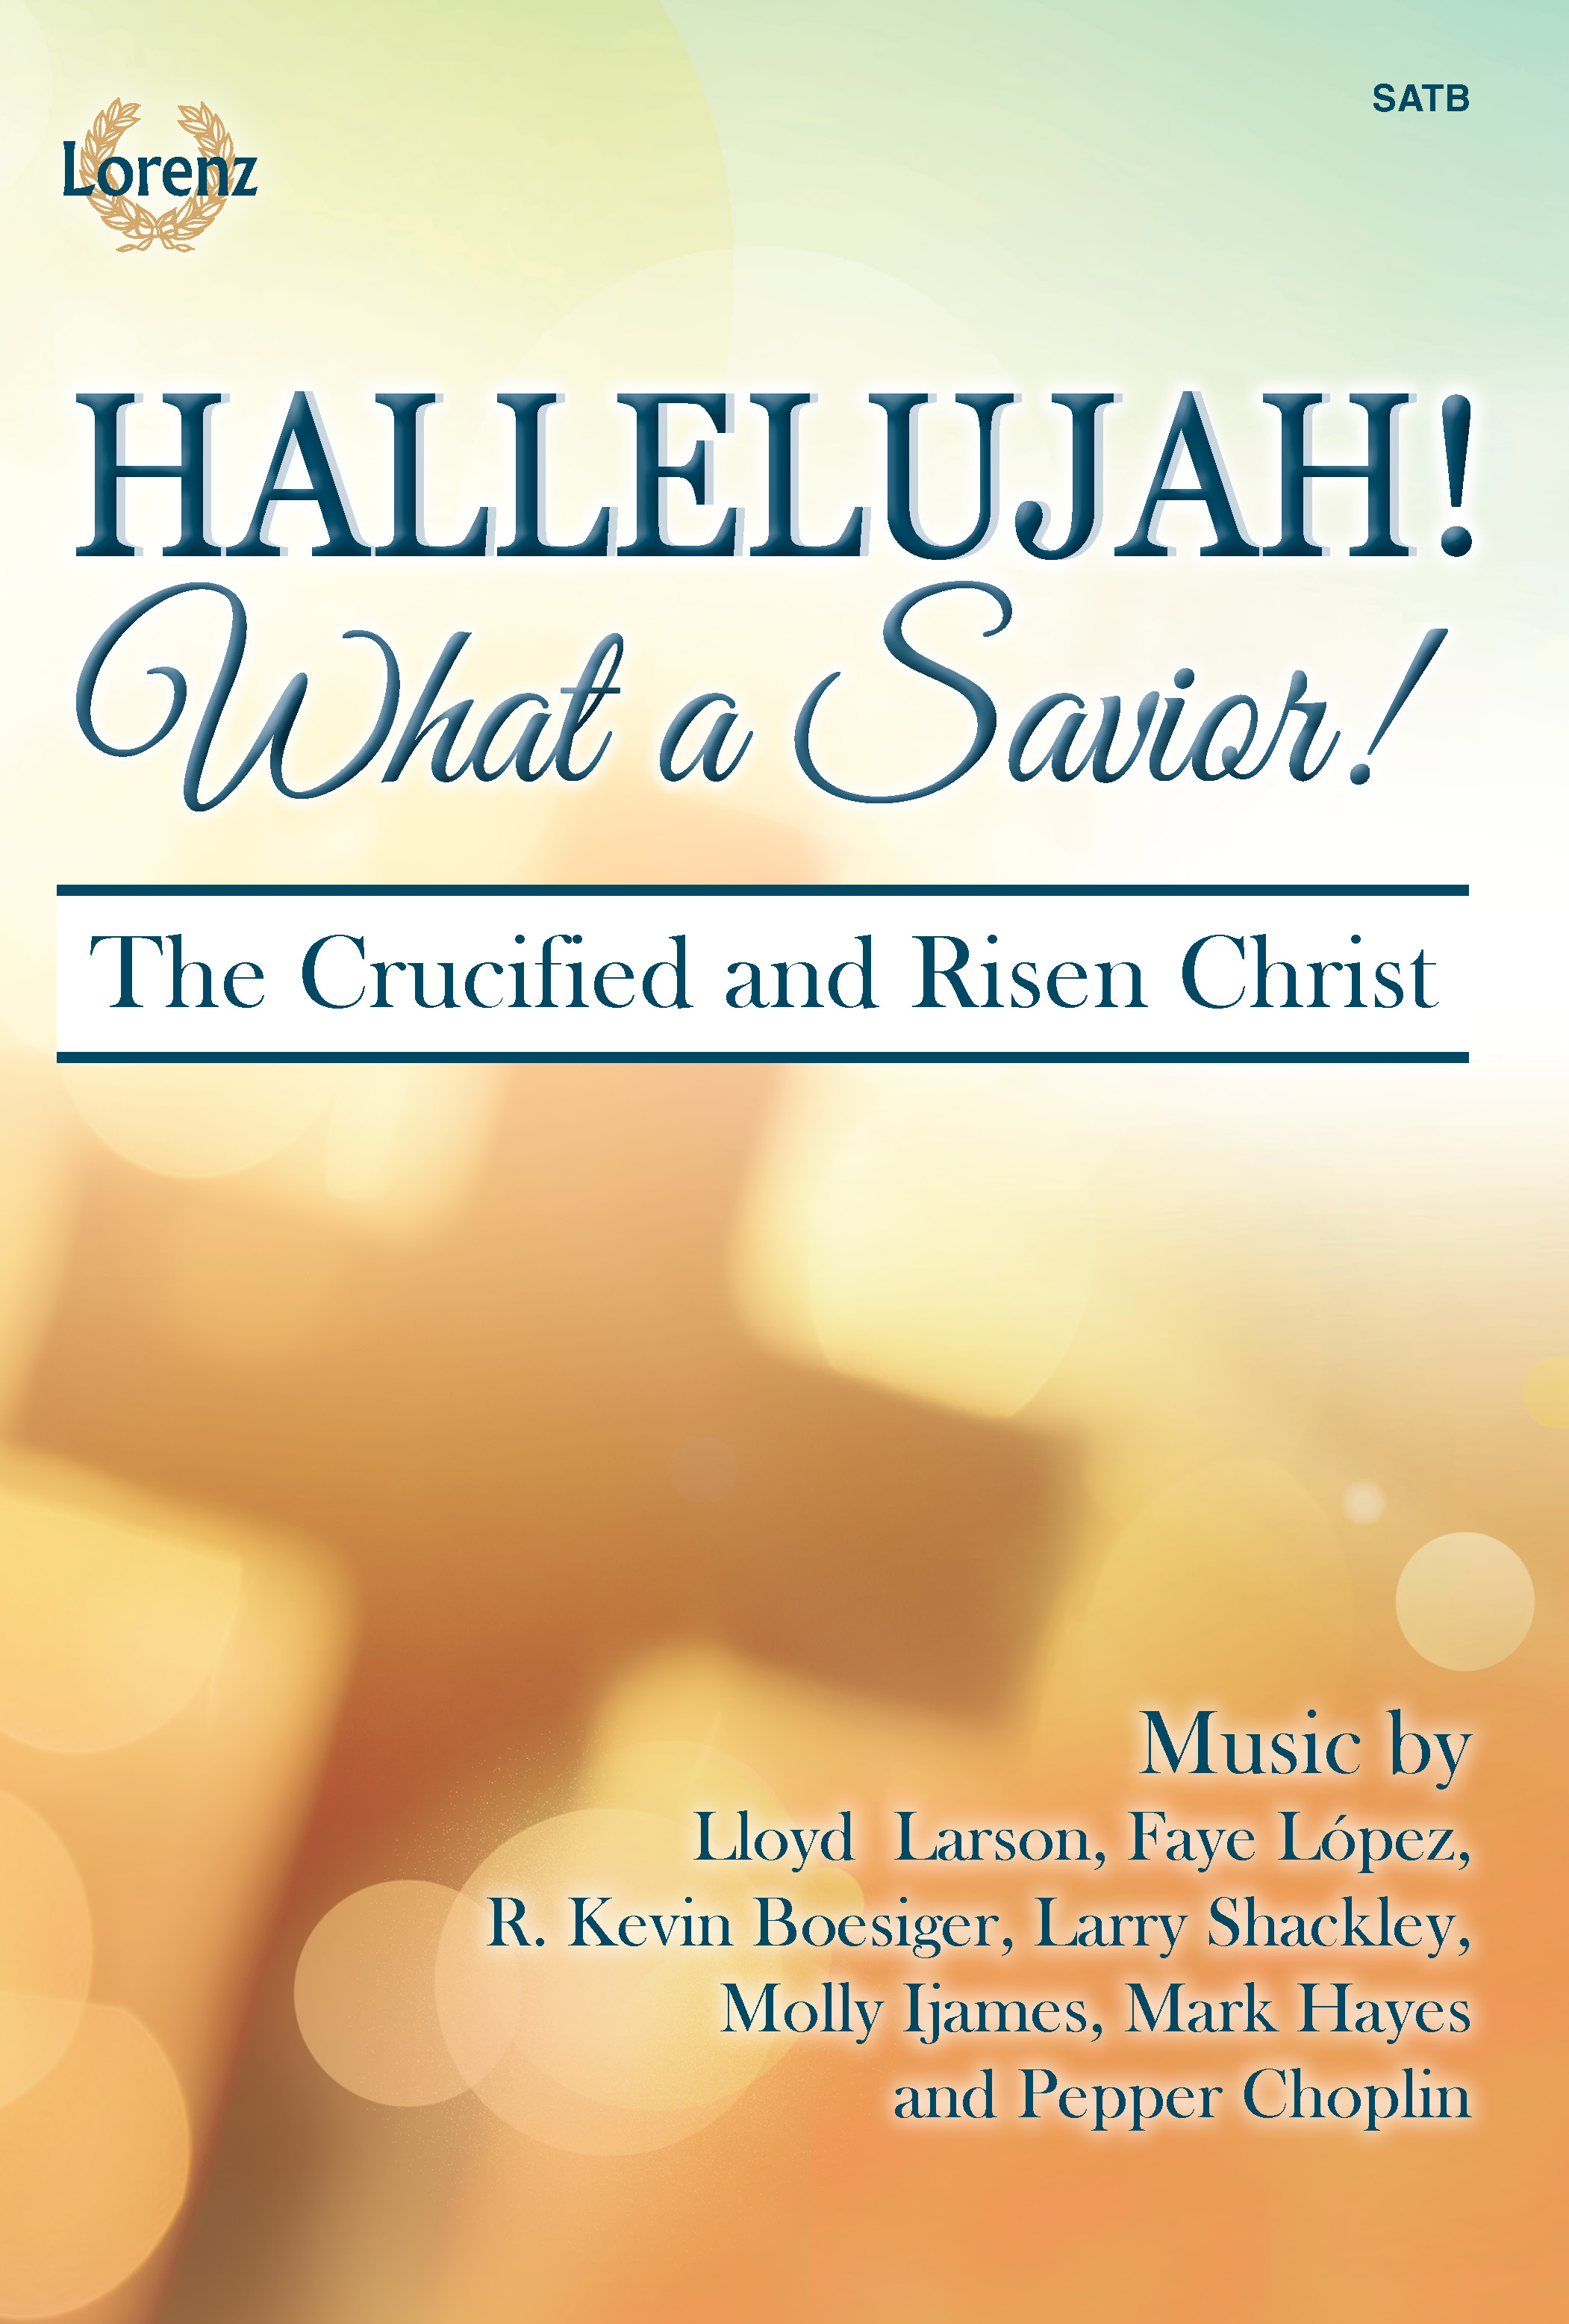 Hallelujah! What a Savior!